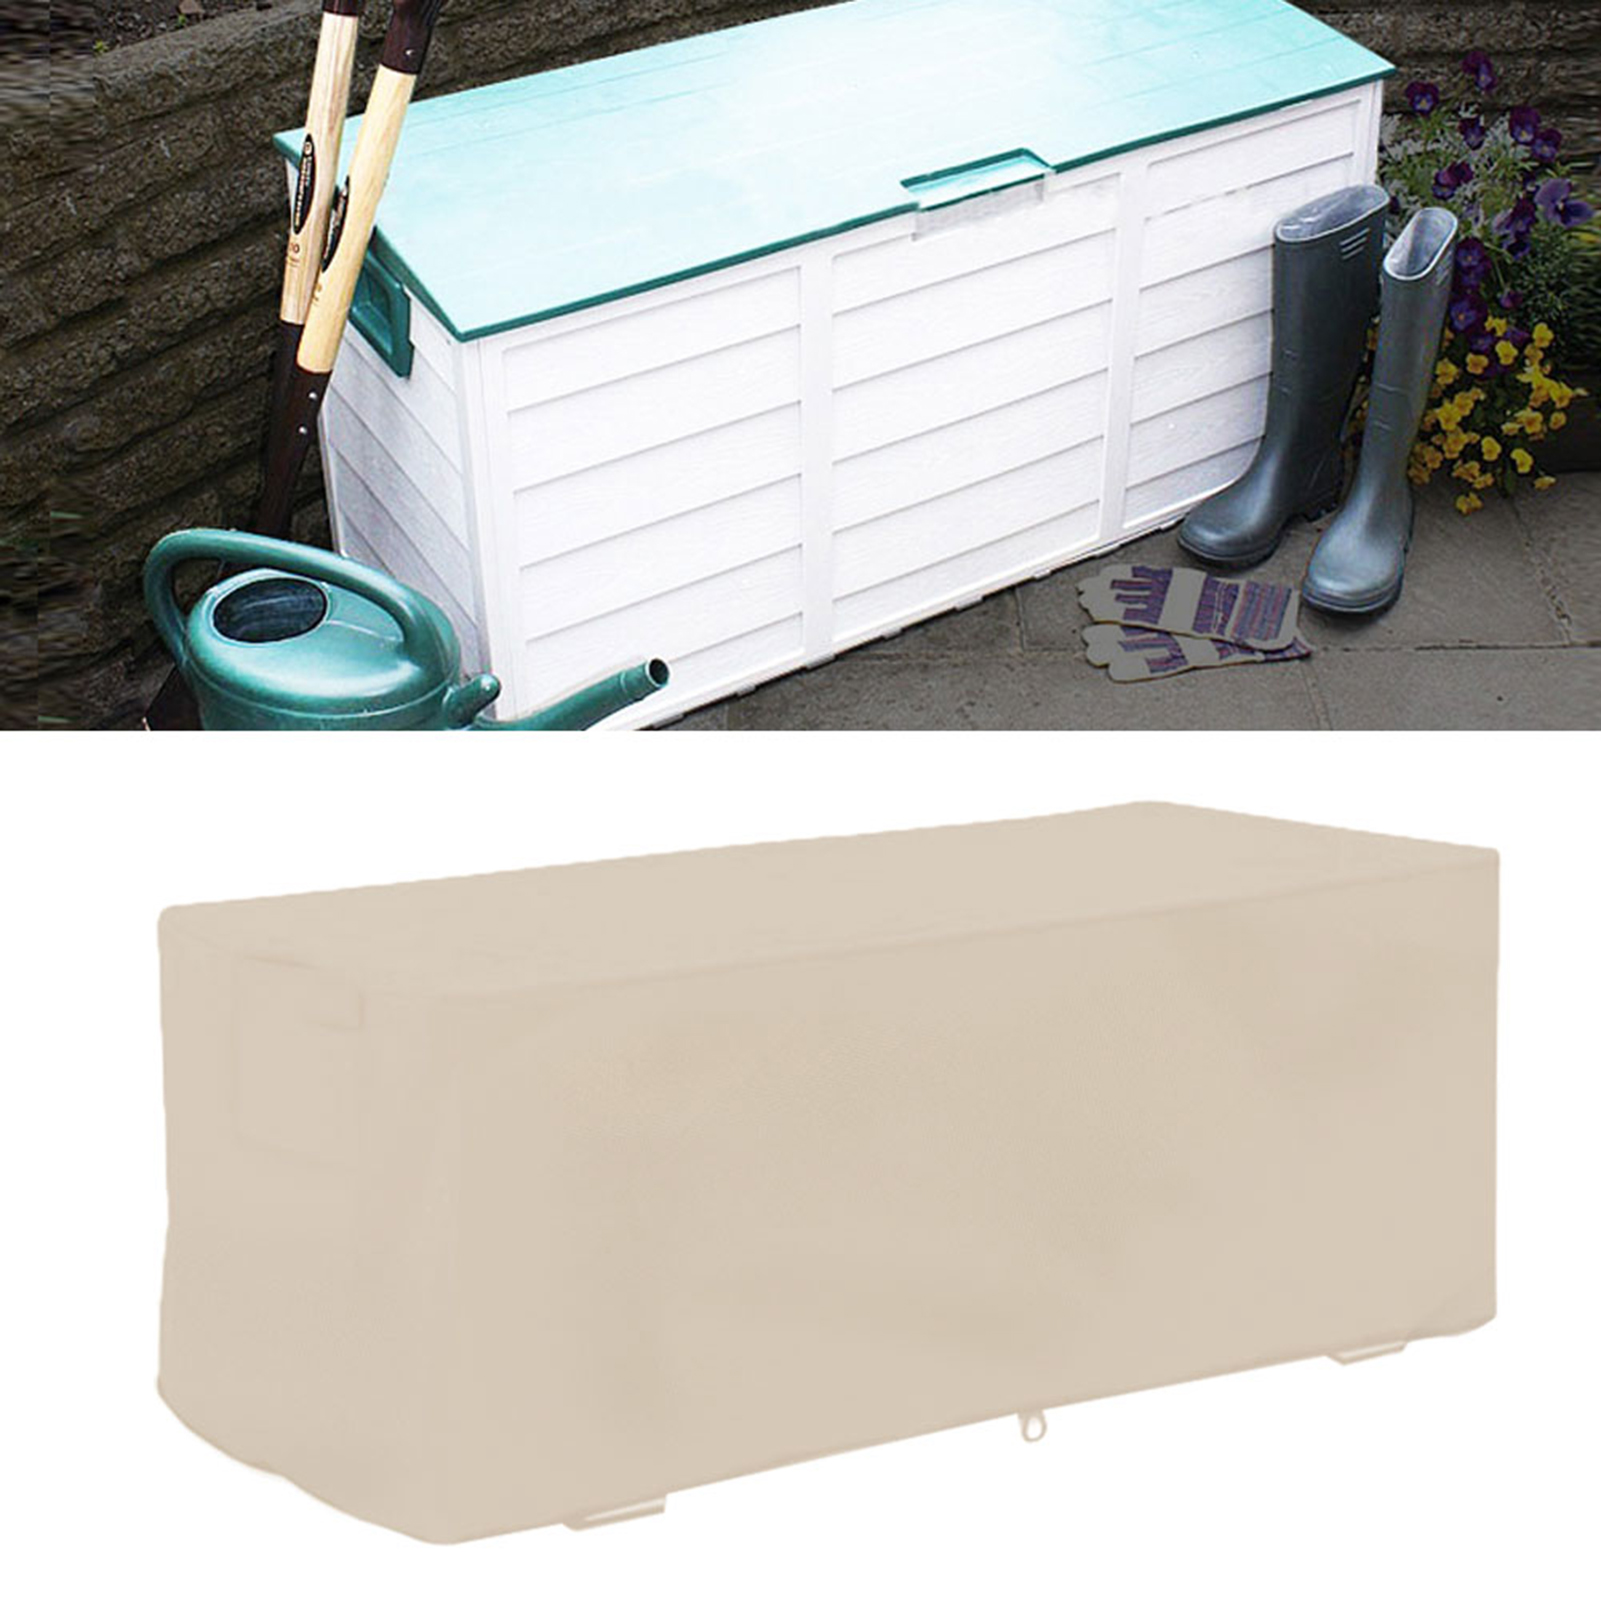 Outdoor-Waterproof-Gardening-Sofa-Bed-Cover-Furniture-Cover-Sofa-Dust-Protector thumbnail 26